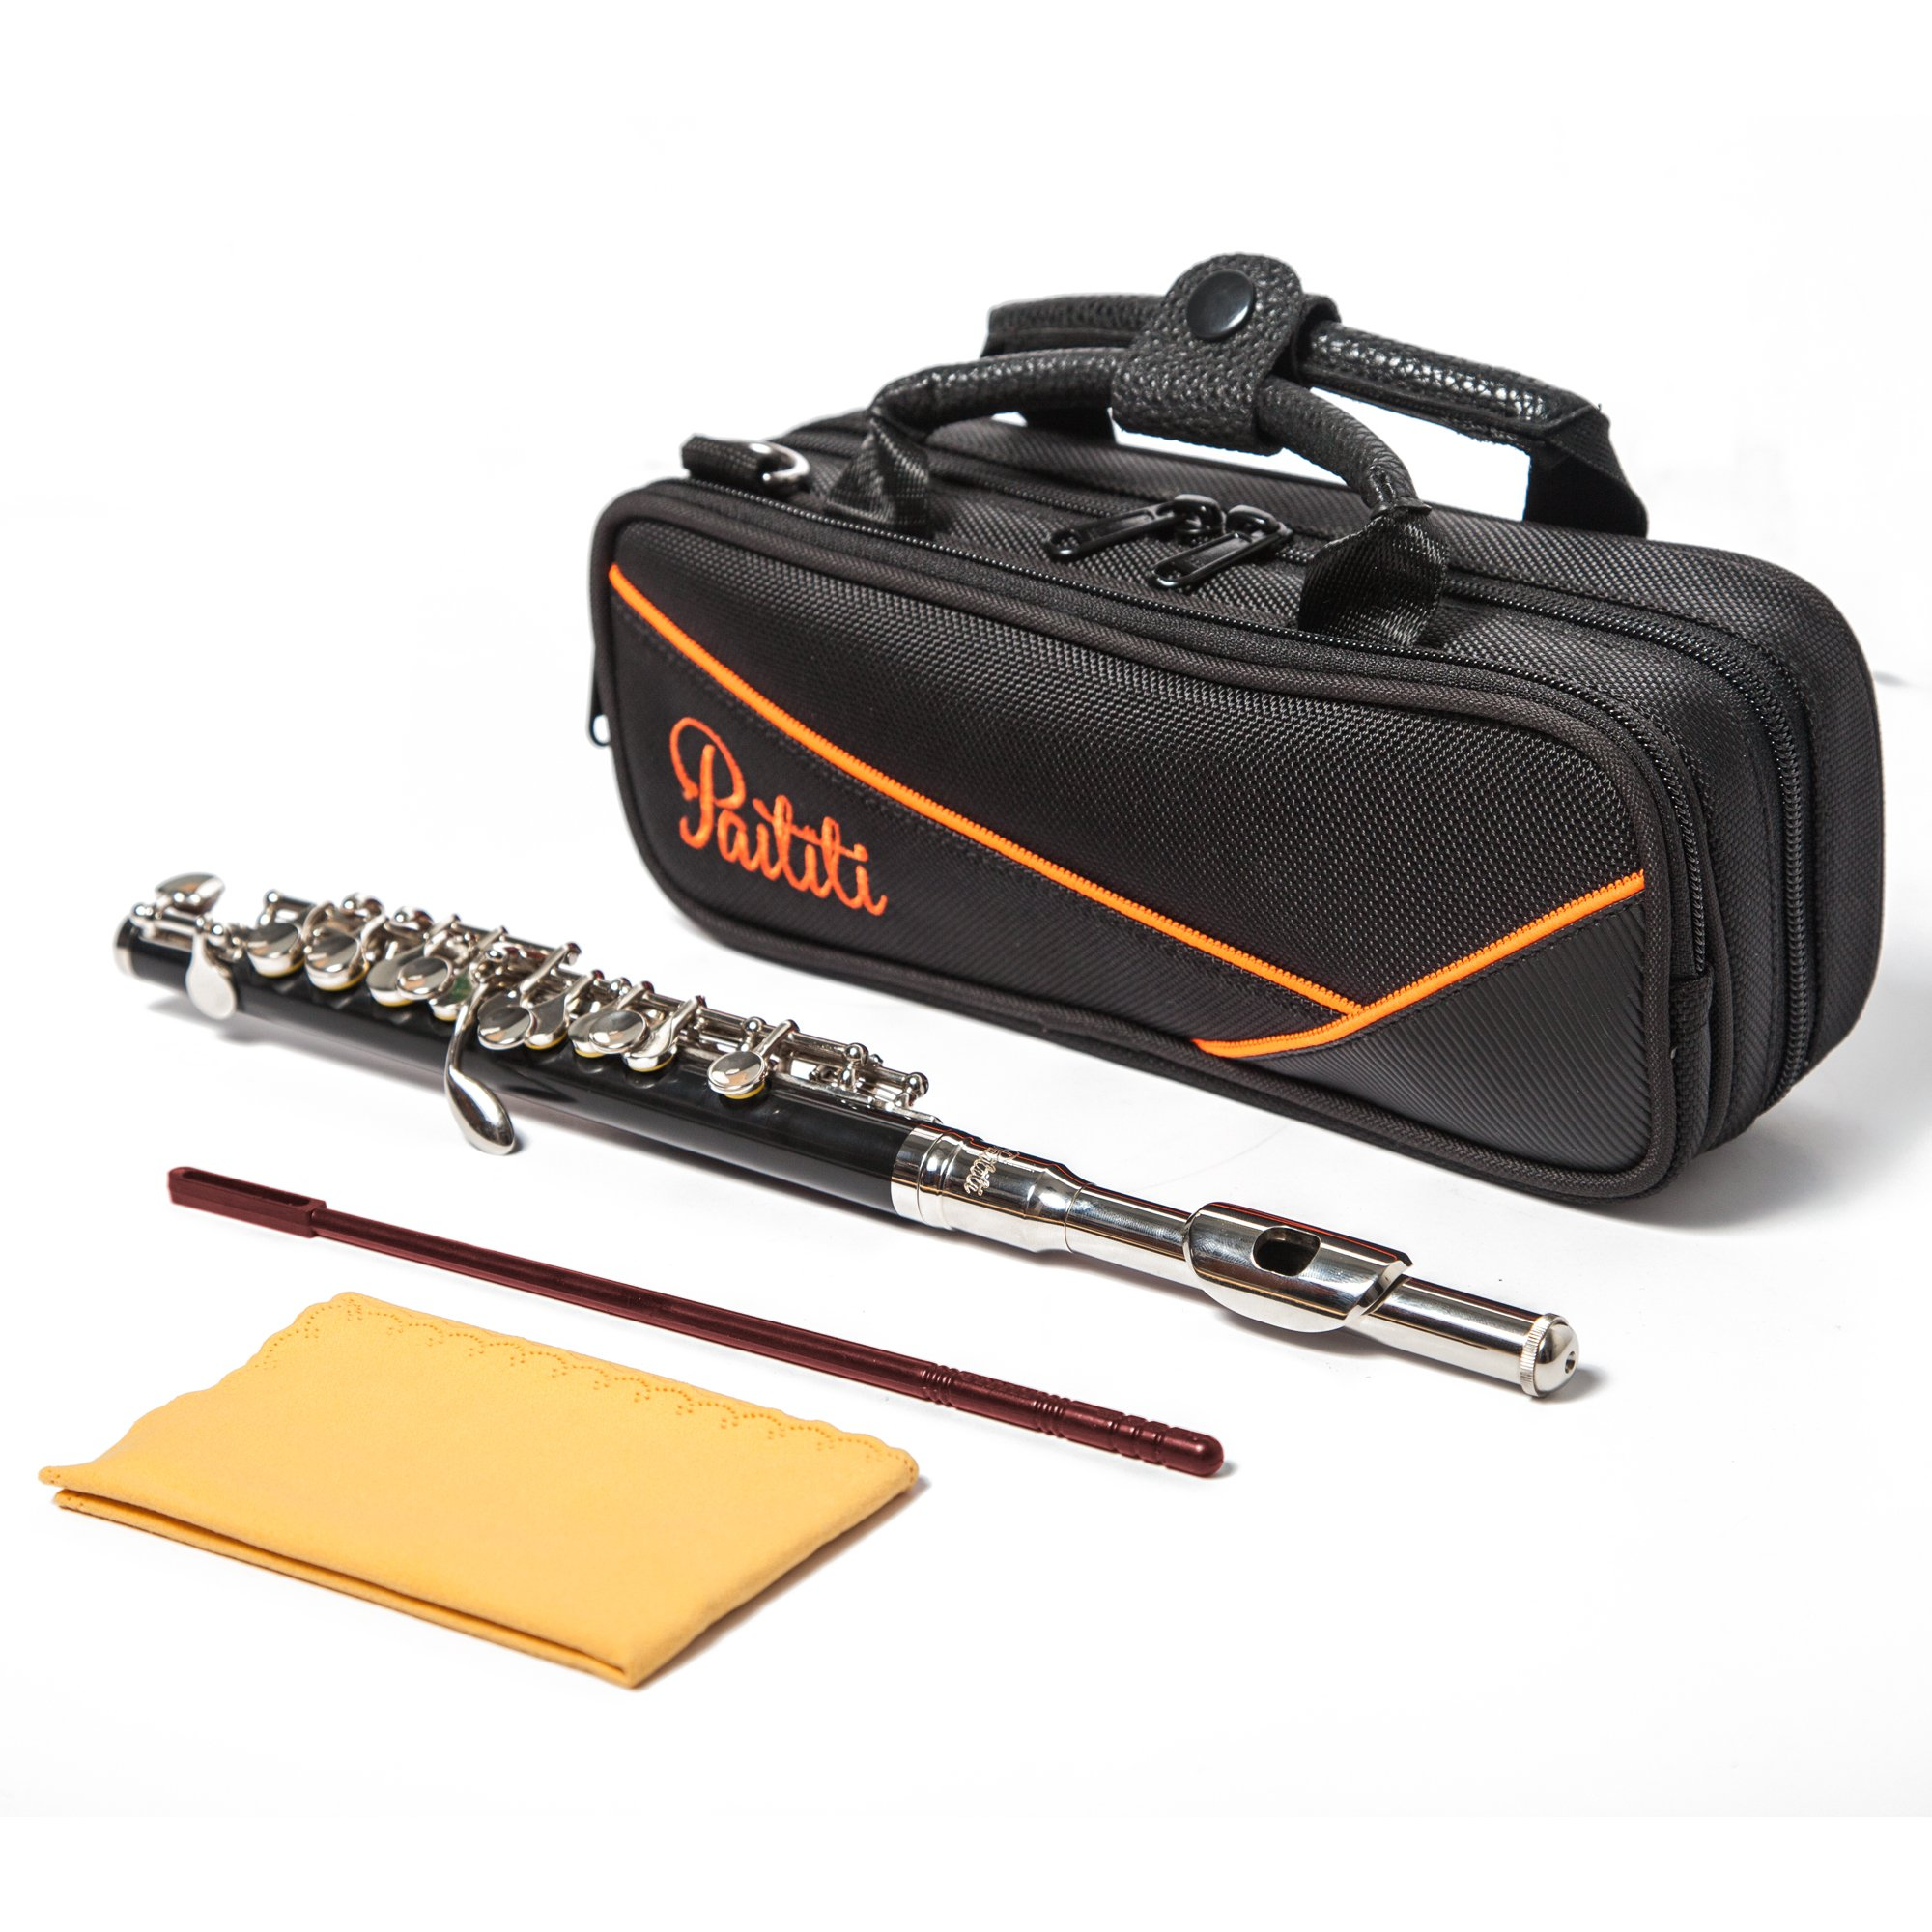 Paititi Professional Centertone Composite Wood Piccolo Flute Silver Plated Head Joint Ebonite Composite Wood Body with Case by Paititi